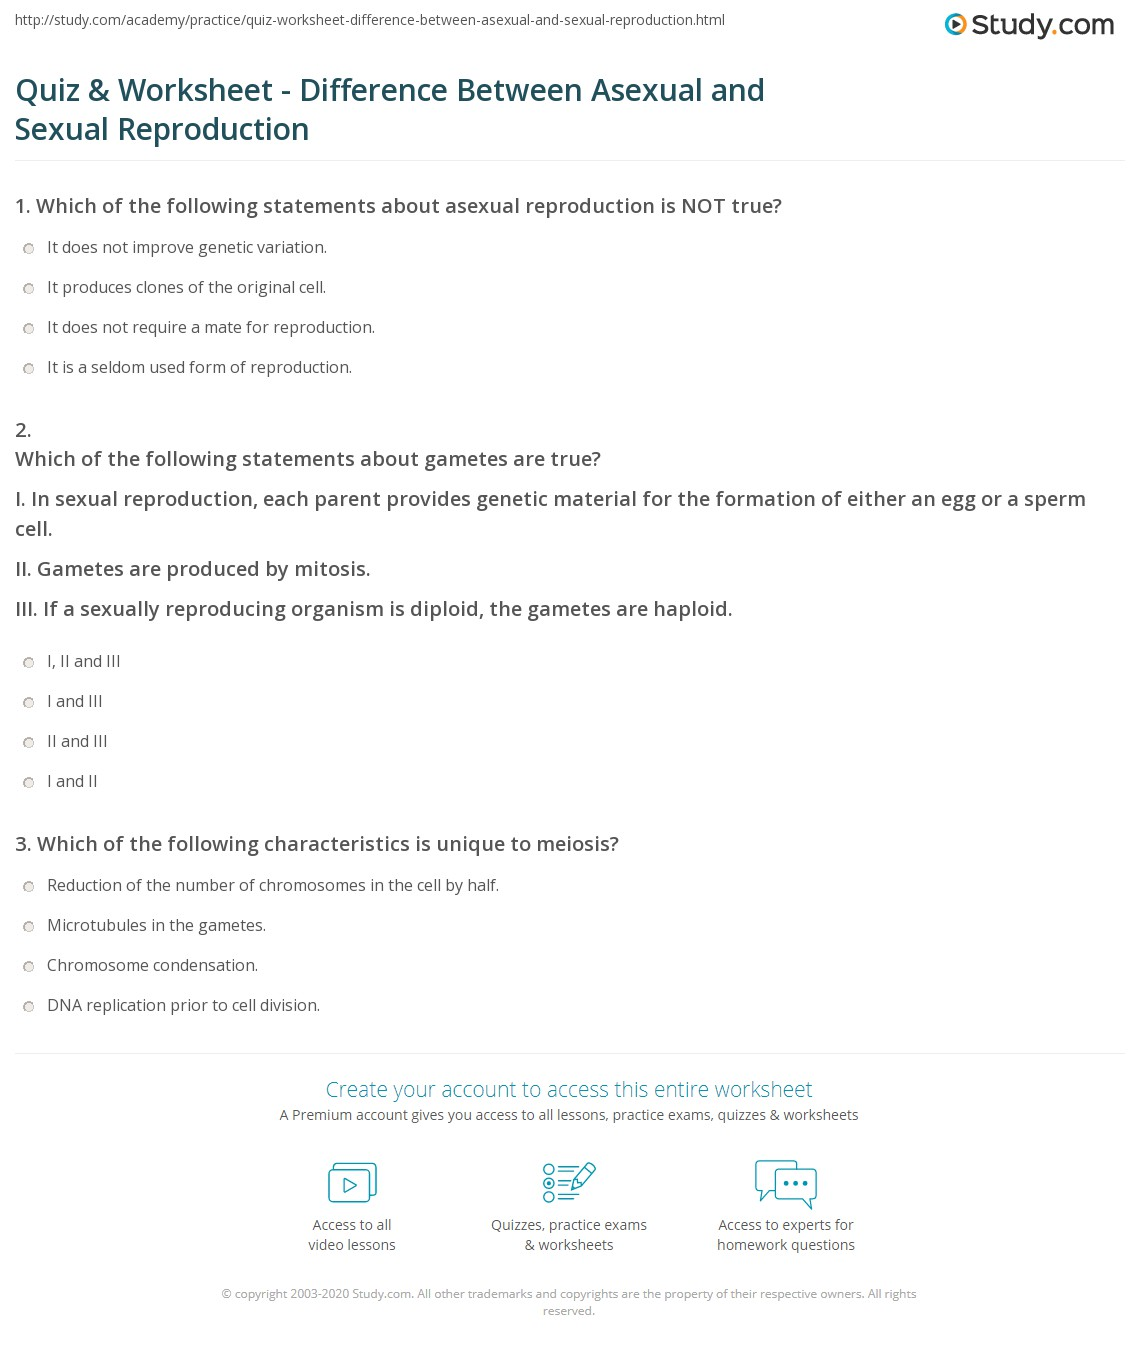 Asexual and sexual reproduction compare prices